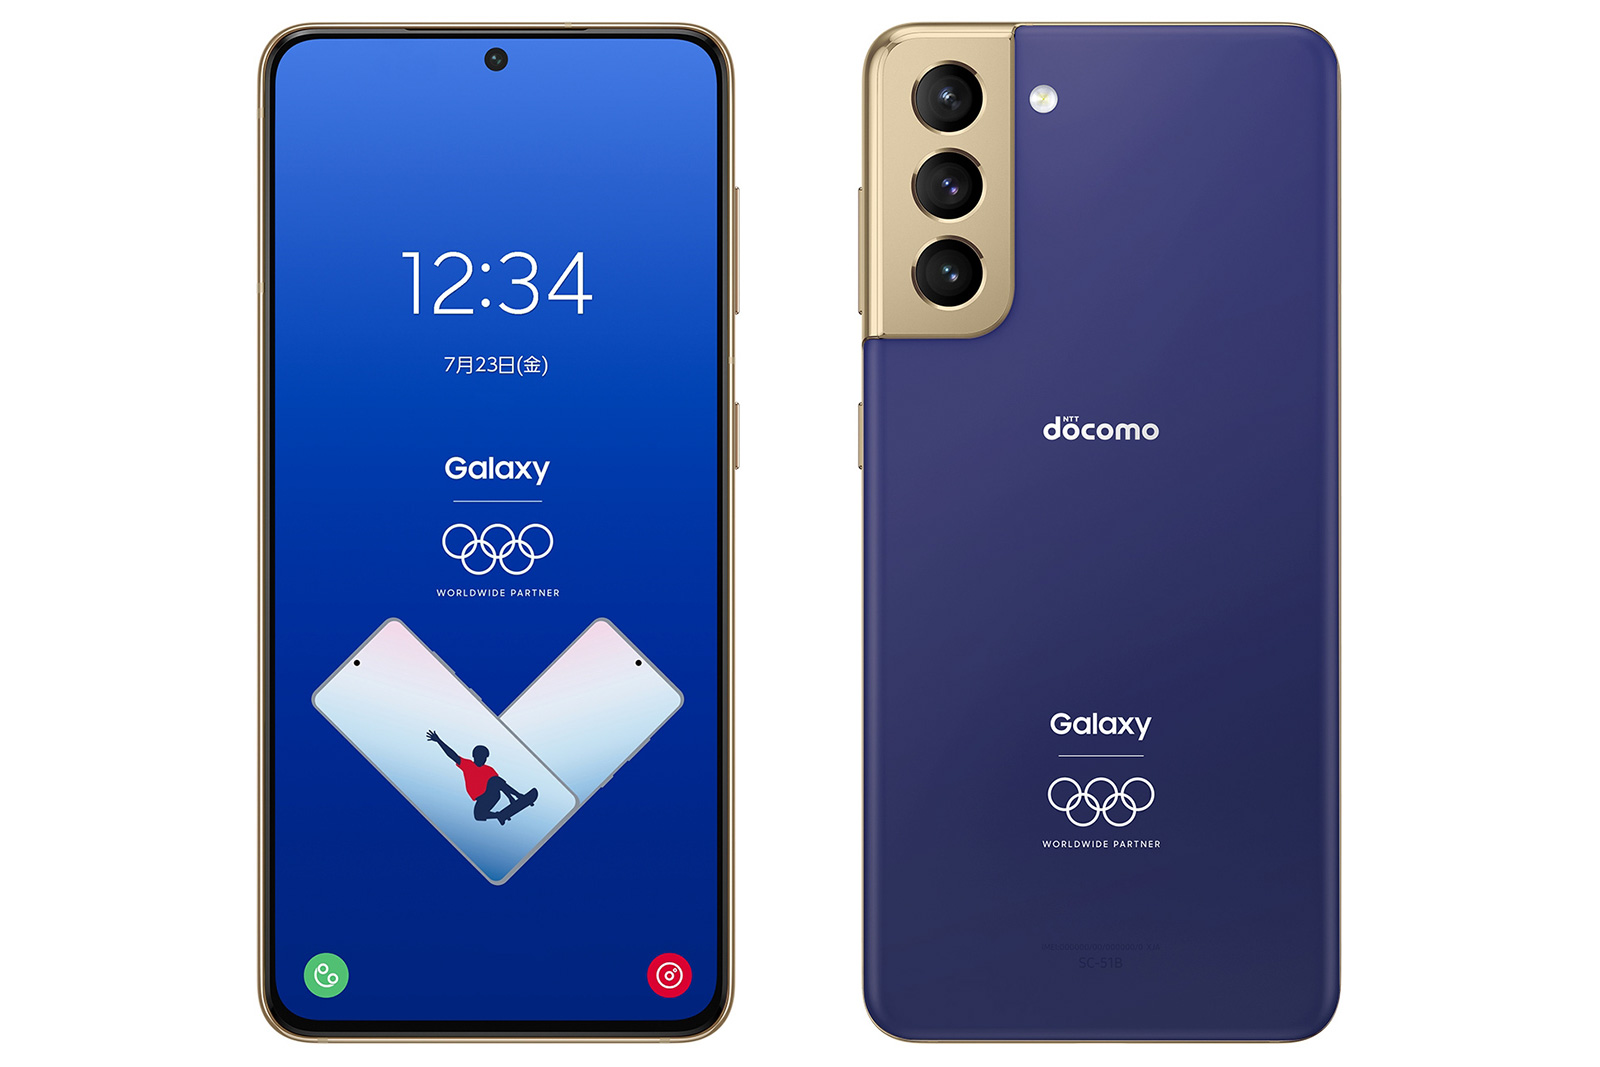 Galaxy S21 Olympic Games Edition